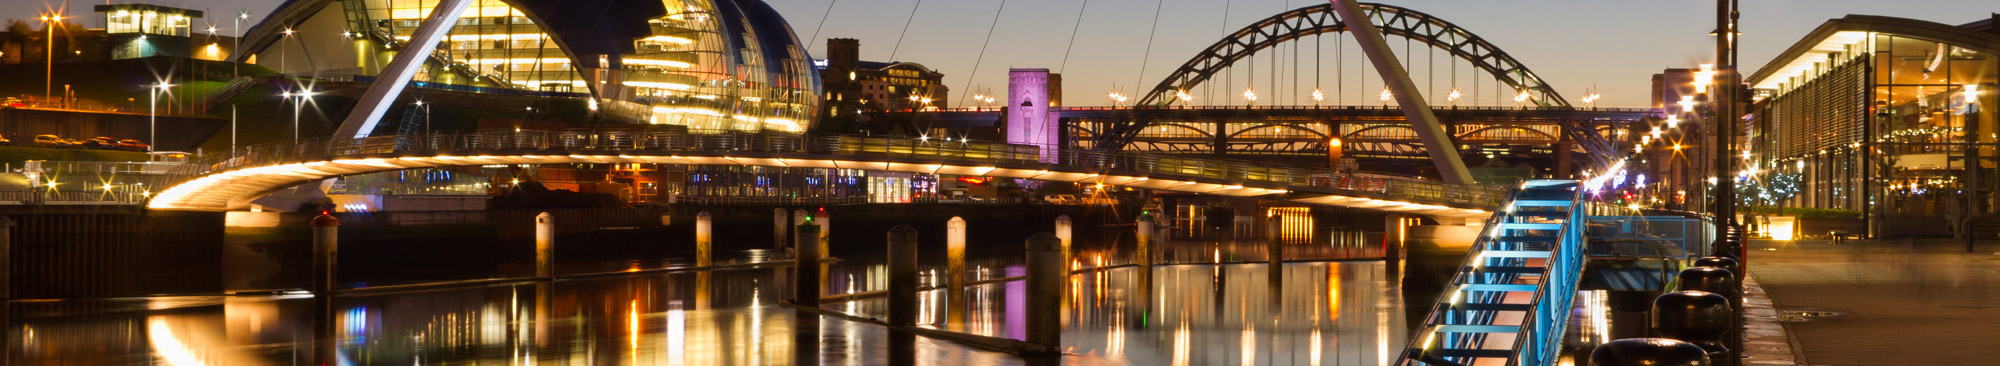 Newcastle - banner image